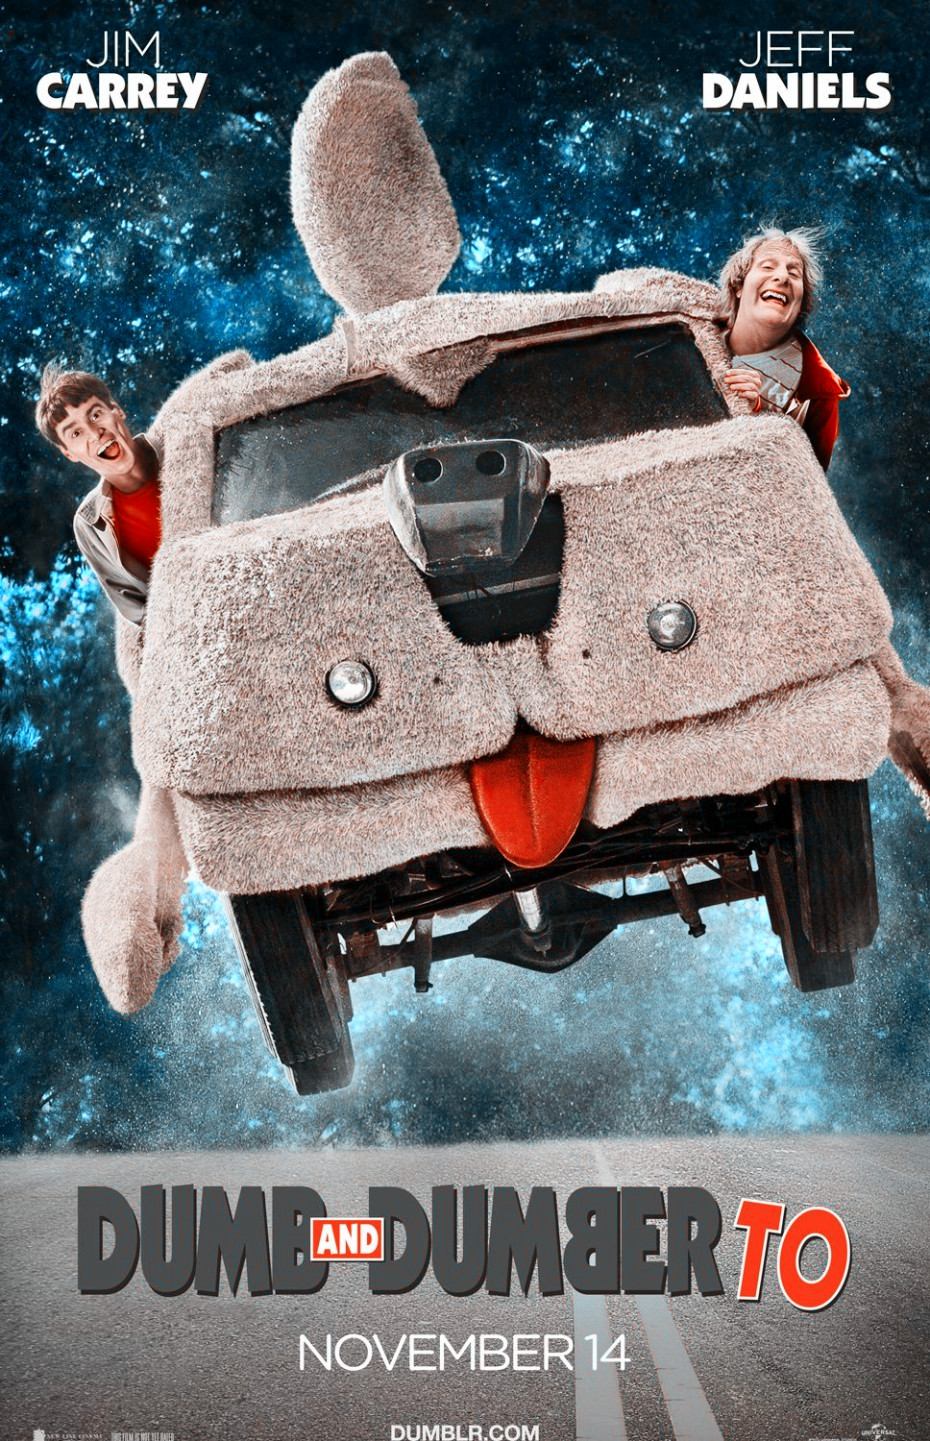 Sinopsis Film Dumb and Dumber To 2014 (Jim Carrey, Jeff Daniels)